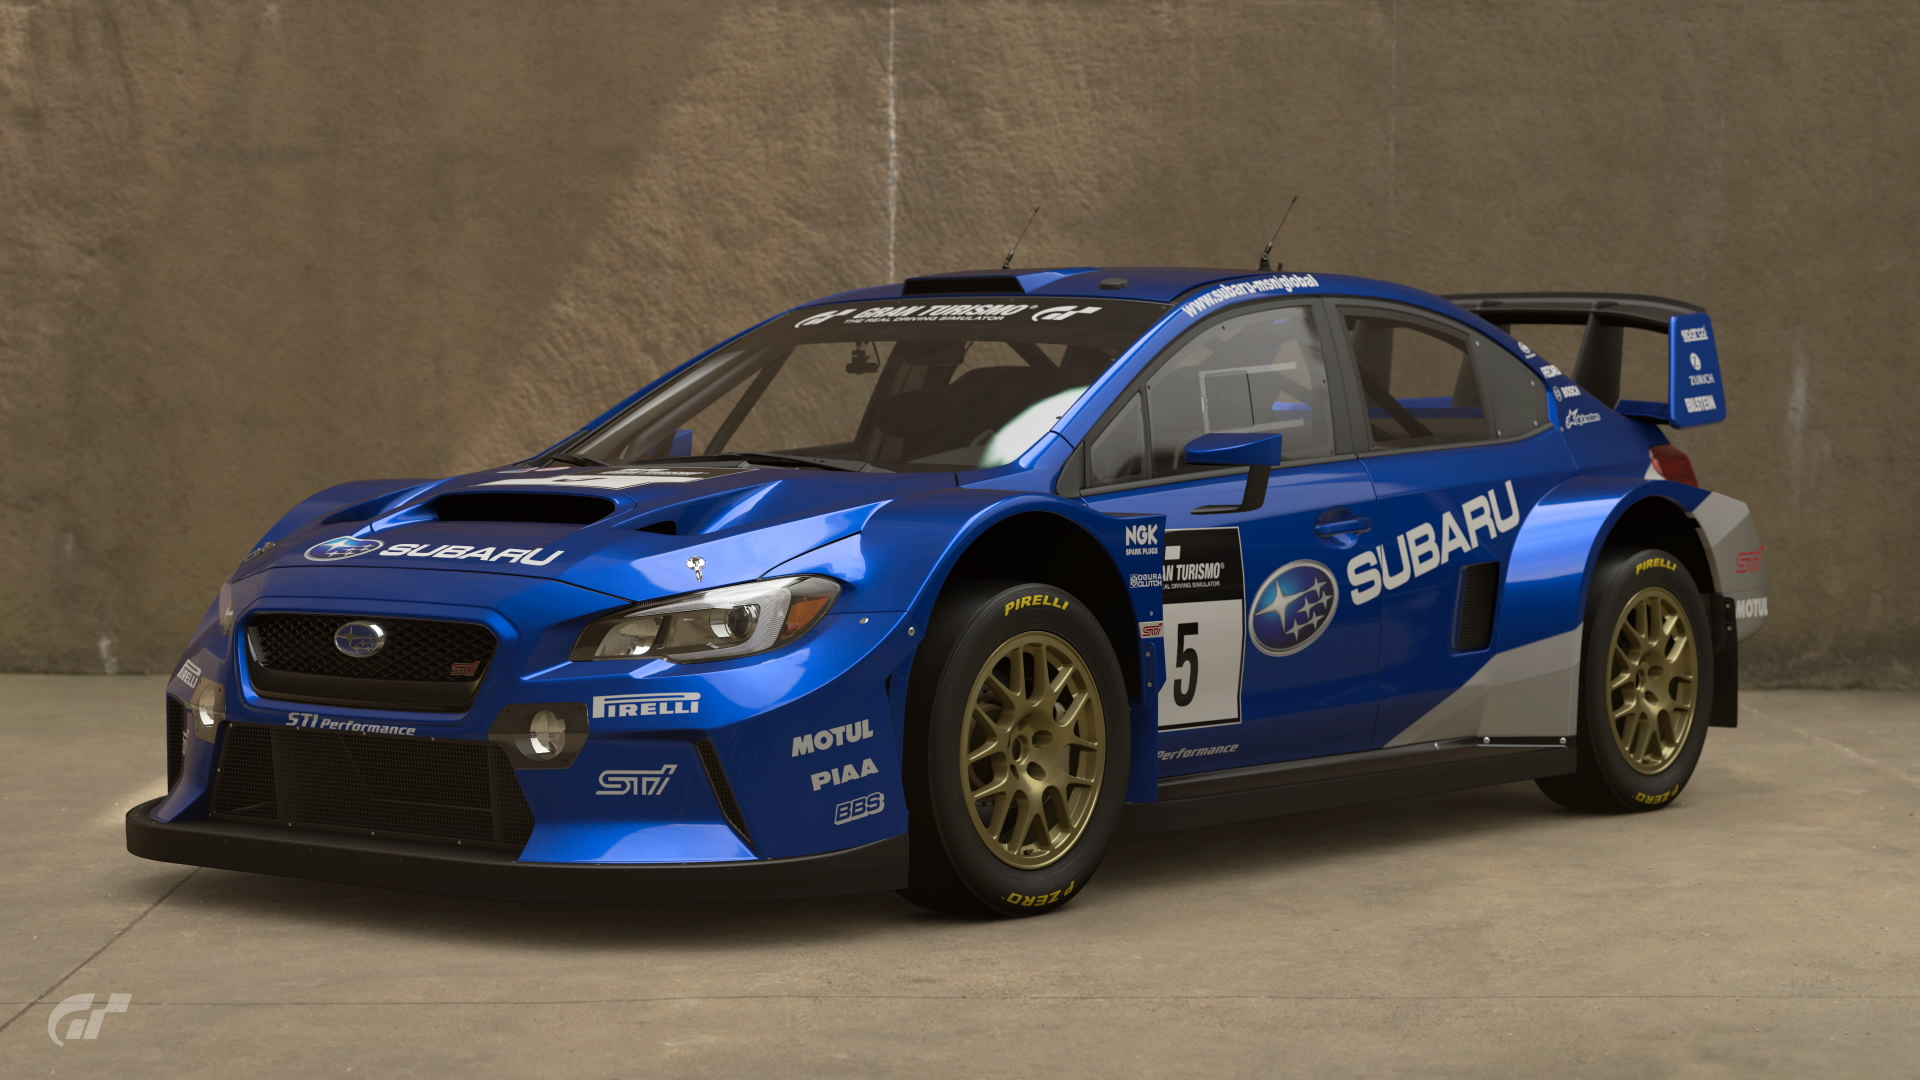 subaru wrc rally car subaru drifting car subaru rally wallpaper subaru legacy rally car. Black Bedroom Furniture Sets. Home Design Ideas